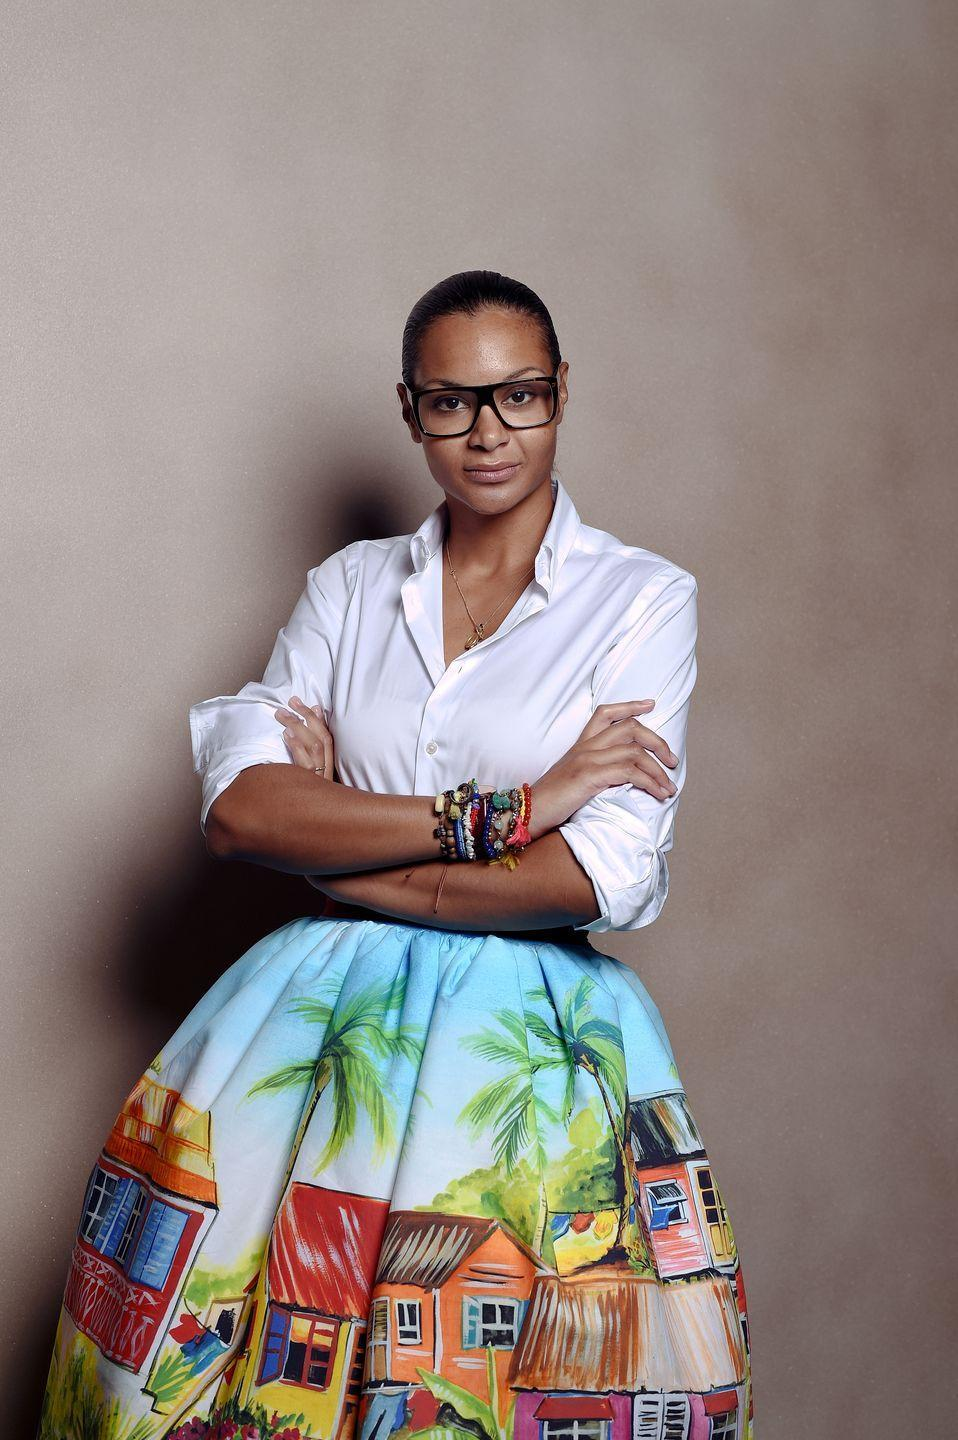 "<p>Stella Jean was and raised in Rome by a Haitian mother and Italian father at <a href=""https://www.forbes.com/sites/liviahengel/2019/06/25/how-this-haitian-italian-designer-takes-local-fashion-global/#440e49676b2e"" rel=""nofollow noopener"" target=""_blank"" data-ylk=""slk:&quot;a time when the country was completely unprepared for multicultural families like mine"" class=""link rapid-noclick-resp"">""a time when the country was completely unprepared for multicultural families like mine</a>...people constantly stopped in the streets to point at us."" But Jean credits her mixed background for her later success: Jean took her father's basic button-down shirts and mixed them with bright fabrics. This led to her main source of design inspiration: combining different cultures. Jean won <em>Vogue Italy</em>'s ""Who Is On Next?"" competition in 2011. In 2014, Giorgio Armani showcased Stella Jean's collection at the Armani theatre in Milan, and she was the first womenswear designer to present in the iconic space. That same year, Jean collaborated with Christian Louboutin on a shoe collection. With high-profile collaborations under her belt, Jean was invited by the UN International Development Organization to join an ethical fashion program. Jean has also garnered an impressive list of celebrity clientele, including Beyonce and Rihanna. Even with all of her global attention, Jean believes fashion shouldn't be exclusive. By inviting craftsmen and artisans to sit front row at her shows, she honors the people who made it all possible.</p>"